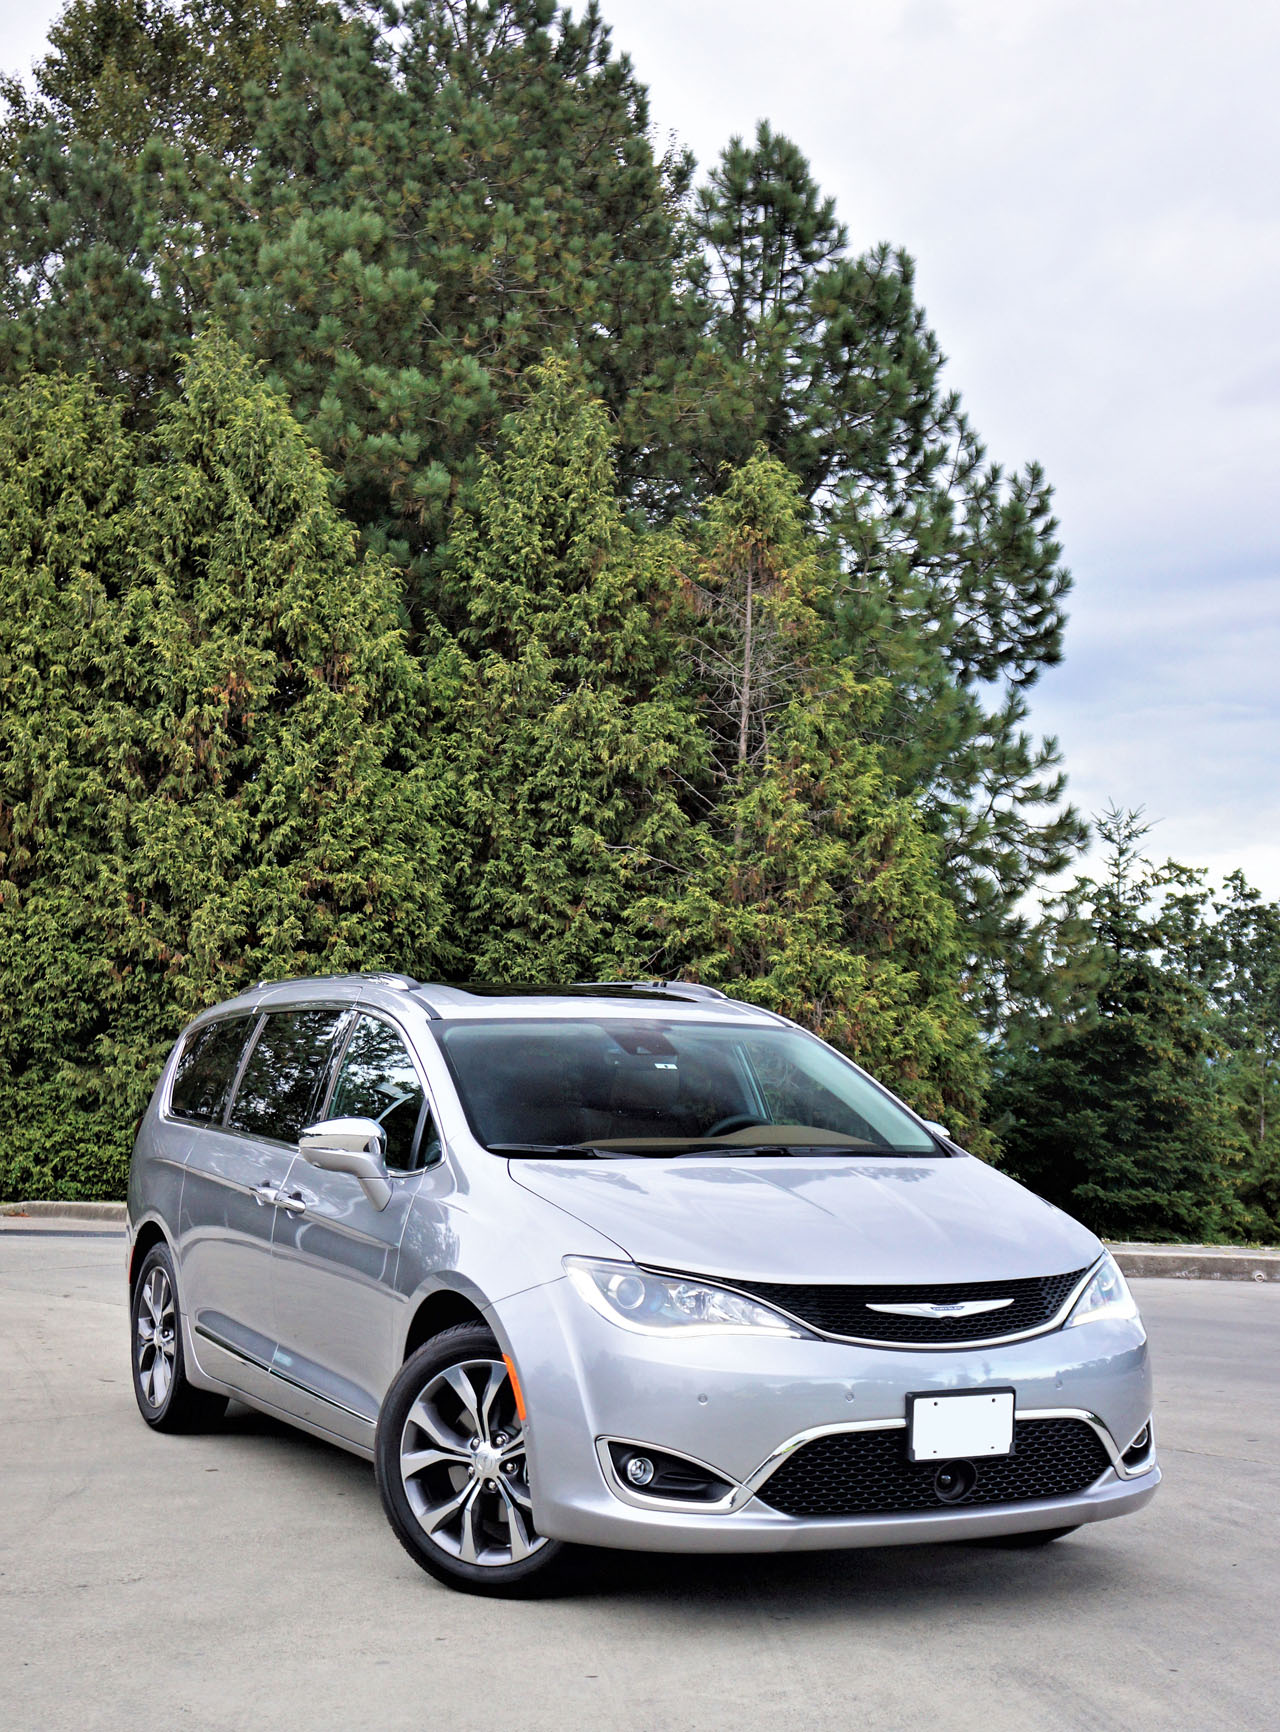 2017 Chrysler Pacifica Limited Road Test | CarCostCanada™